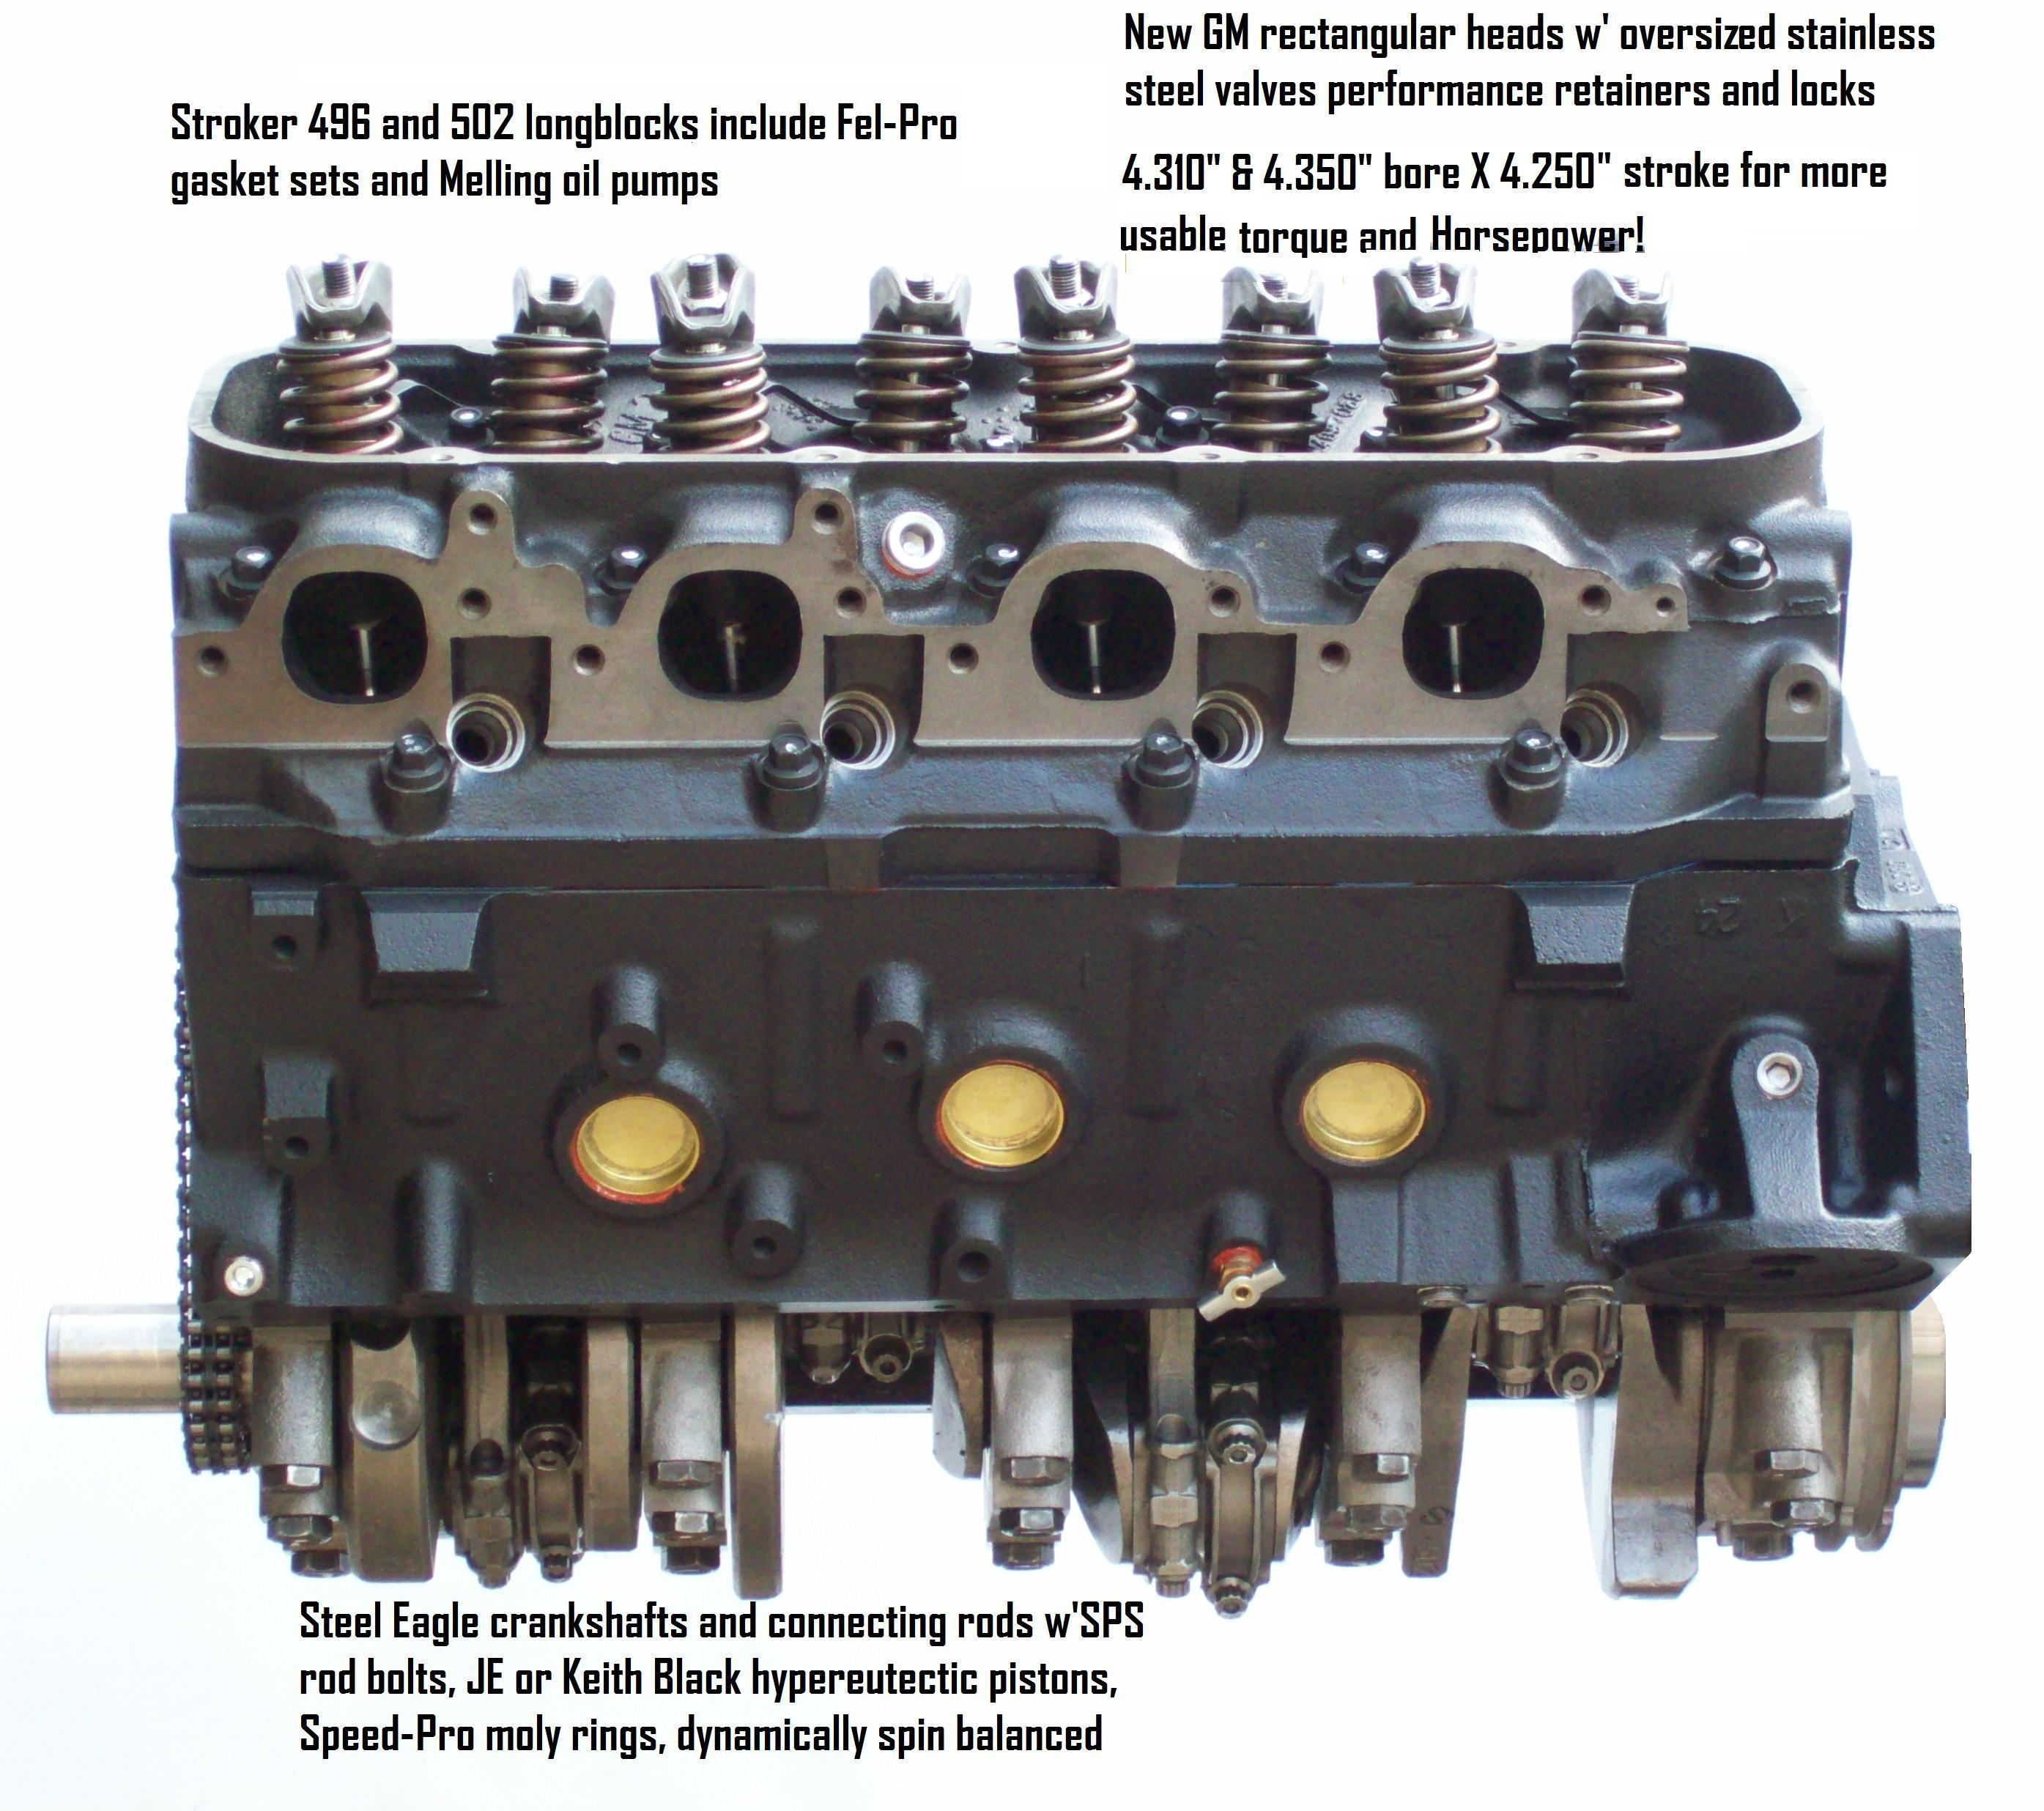 Chevrolet Big Block Remanufactured Engines